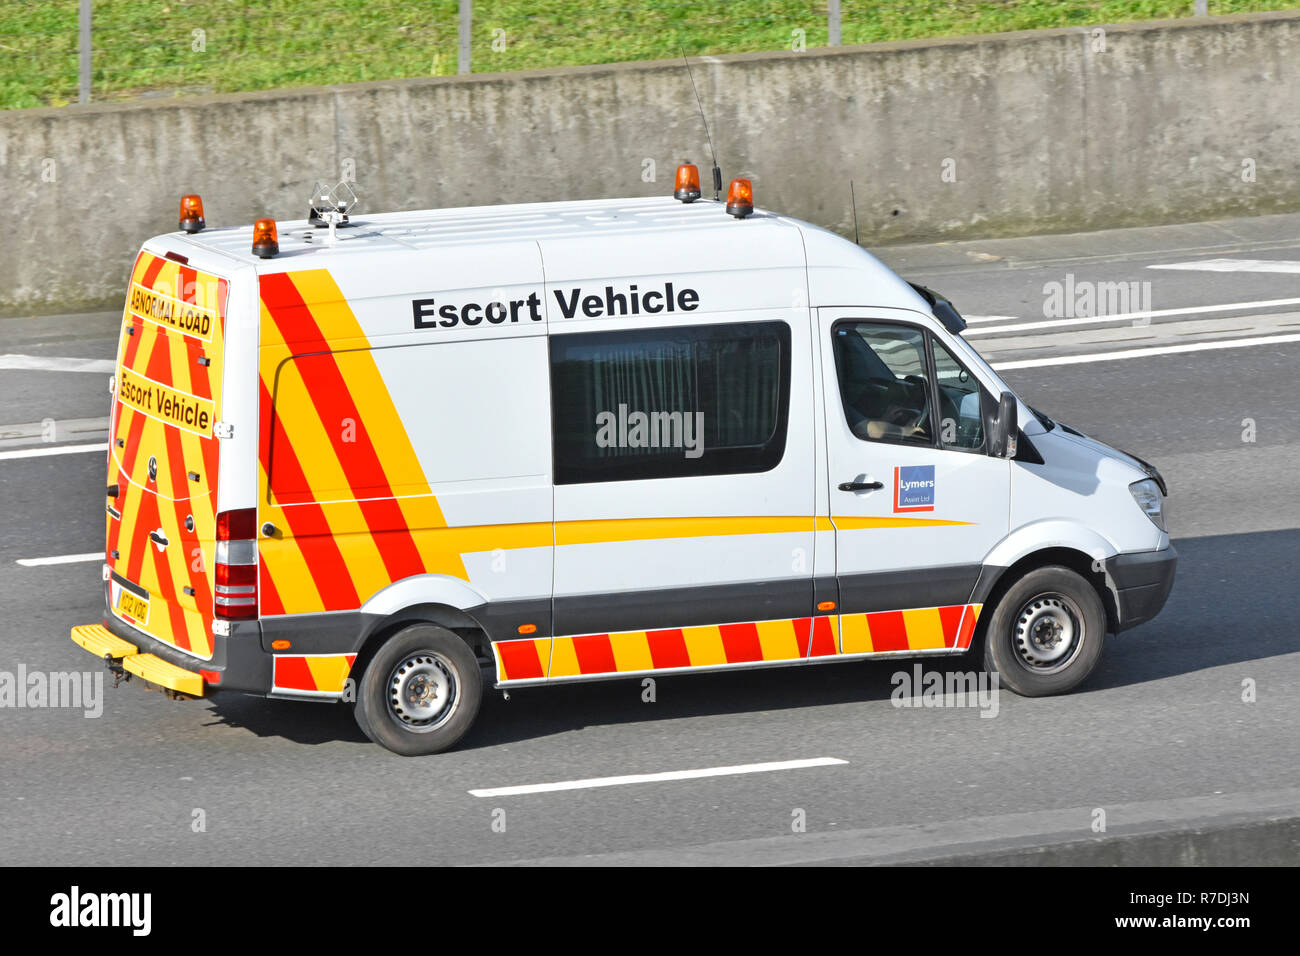 Specialist high visibility abnormal & wide load escort vehicle service by Lymers Assist freight road transport business van driving on UK m25 motorway - Stock Image